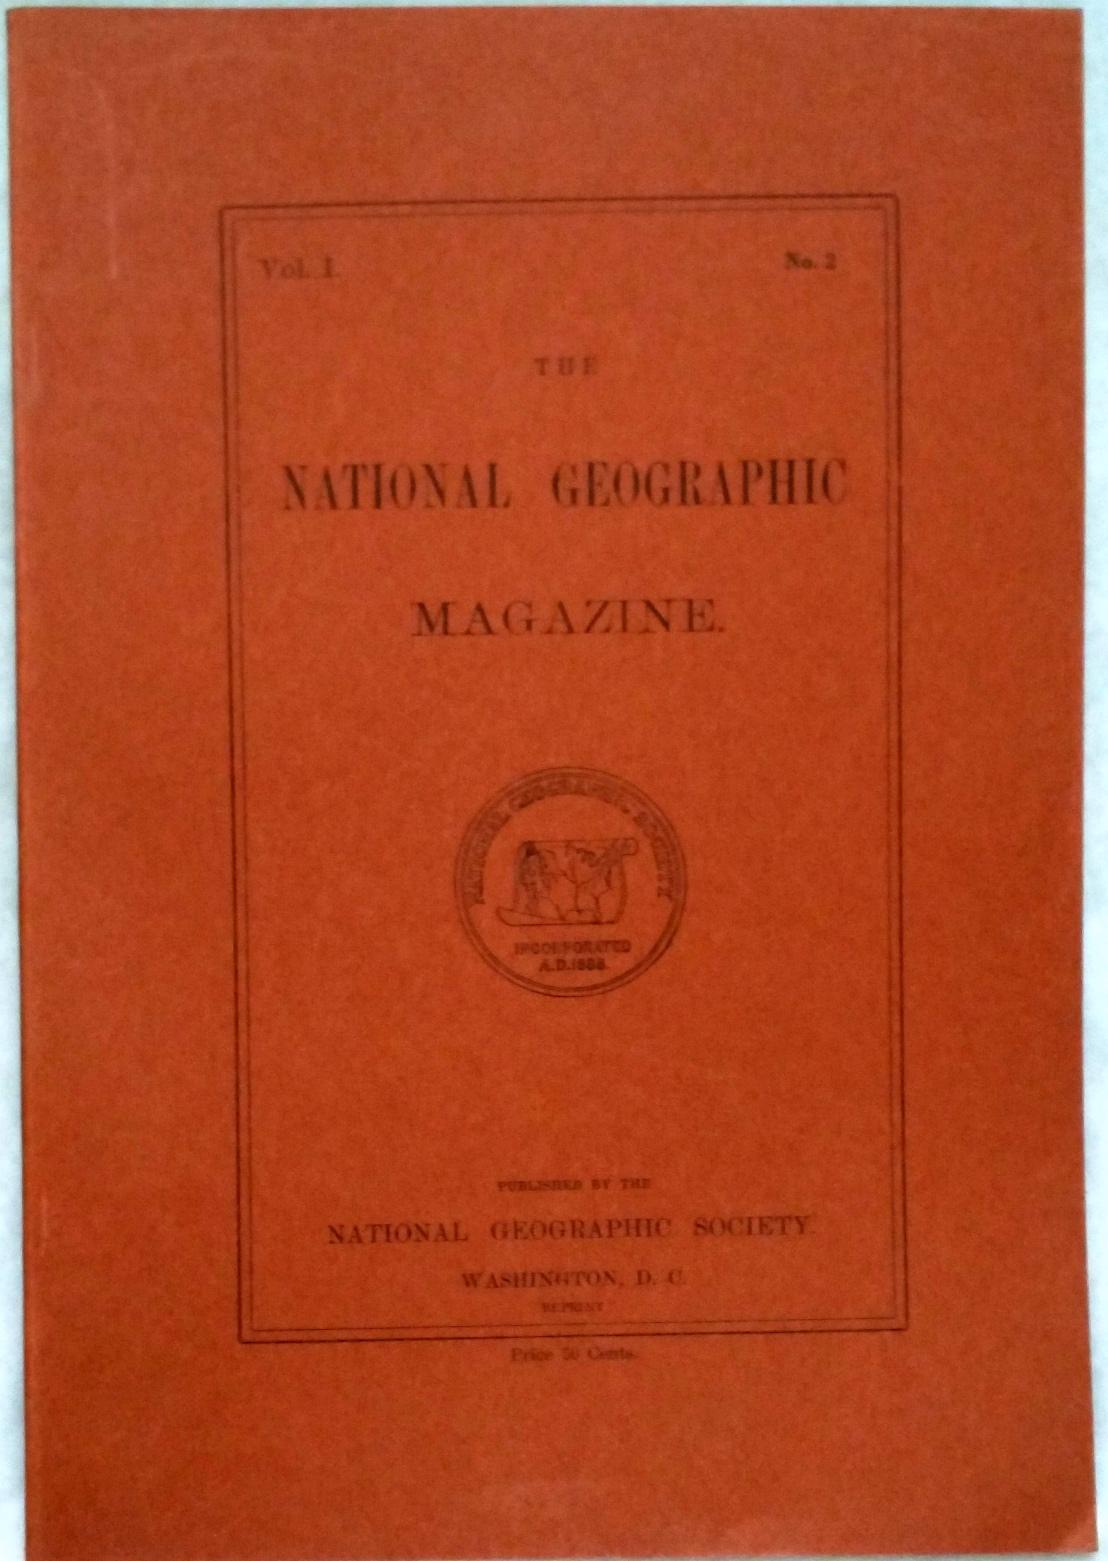 Image for The National Geographic Magazine, Vol I. No. 2